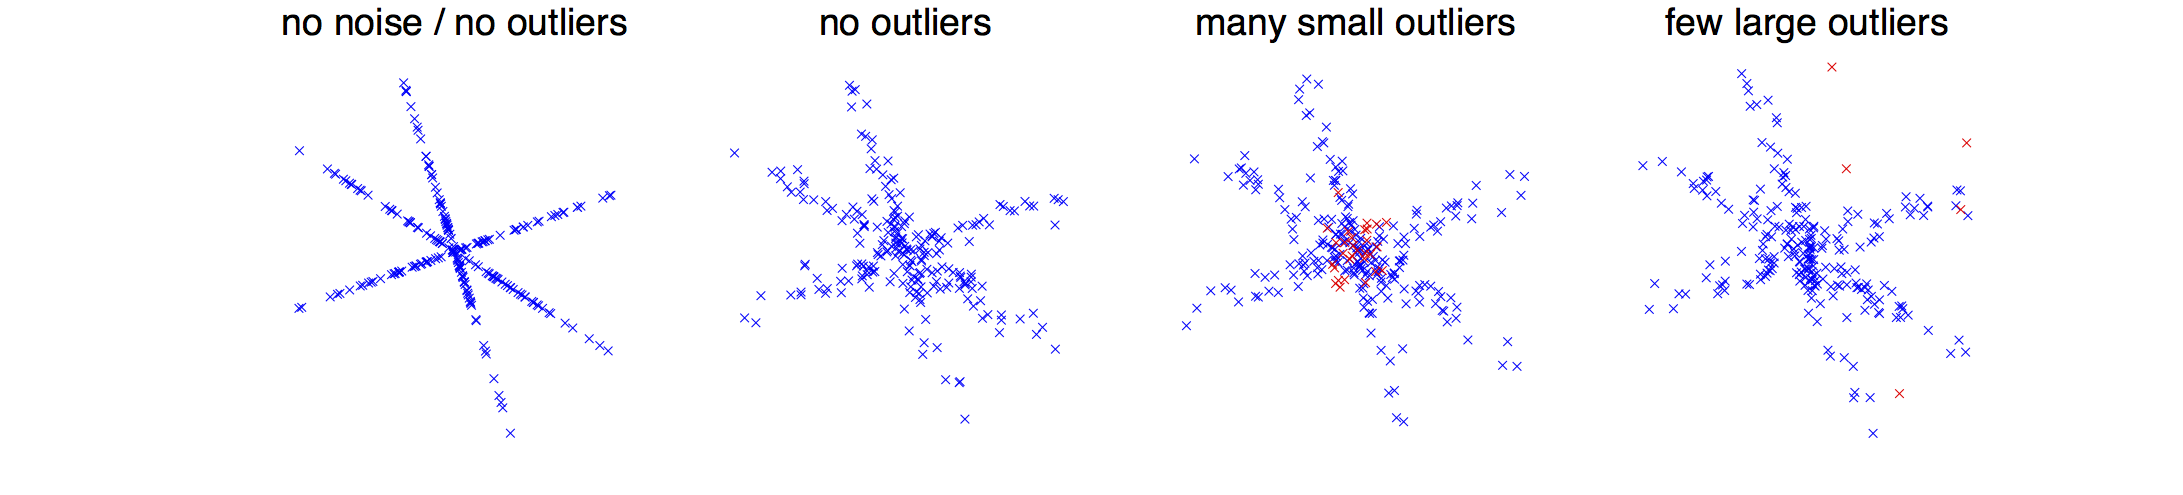 Dictionary learning with noise and outliers